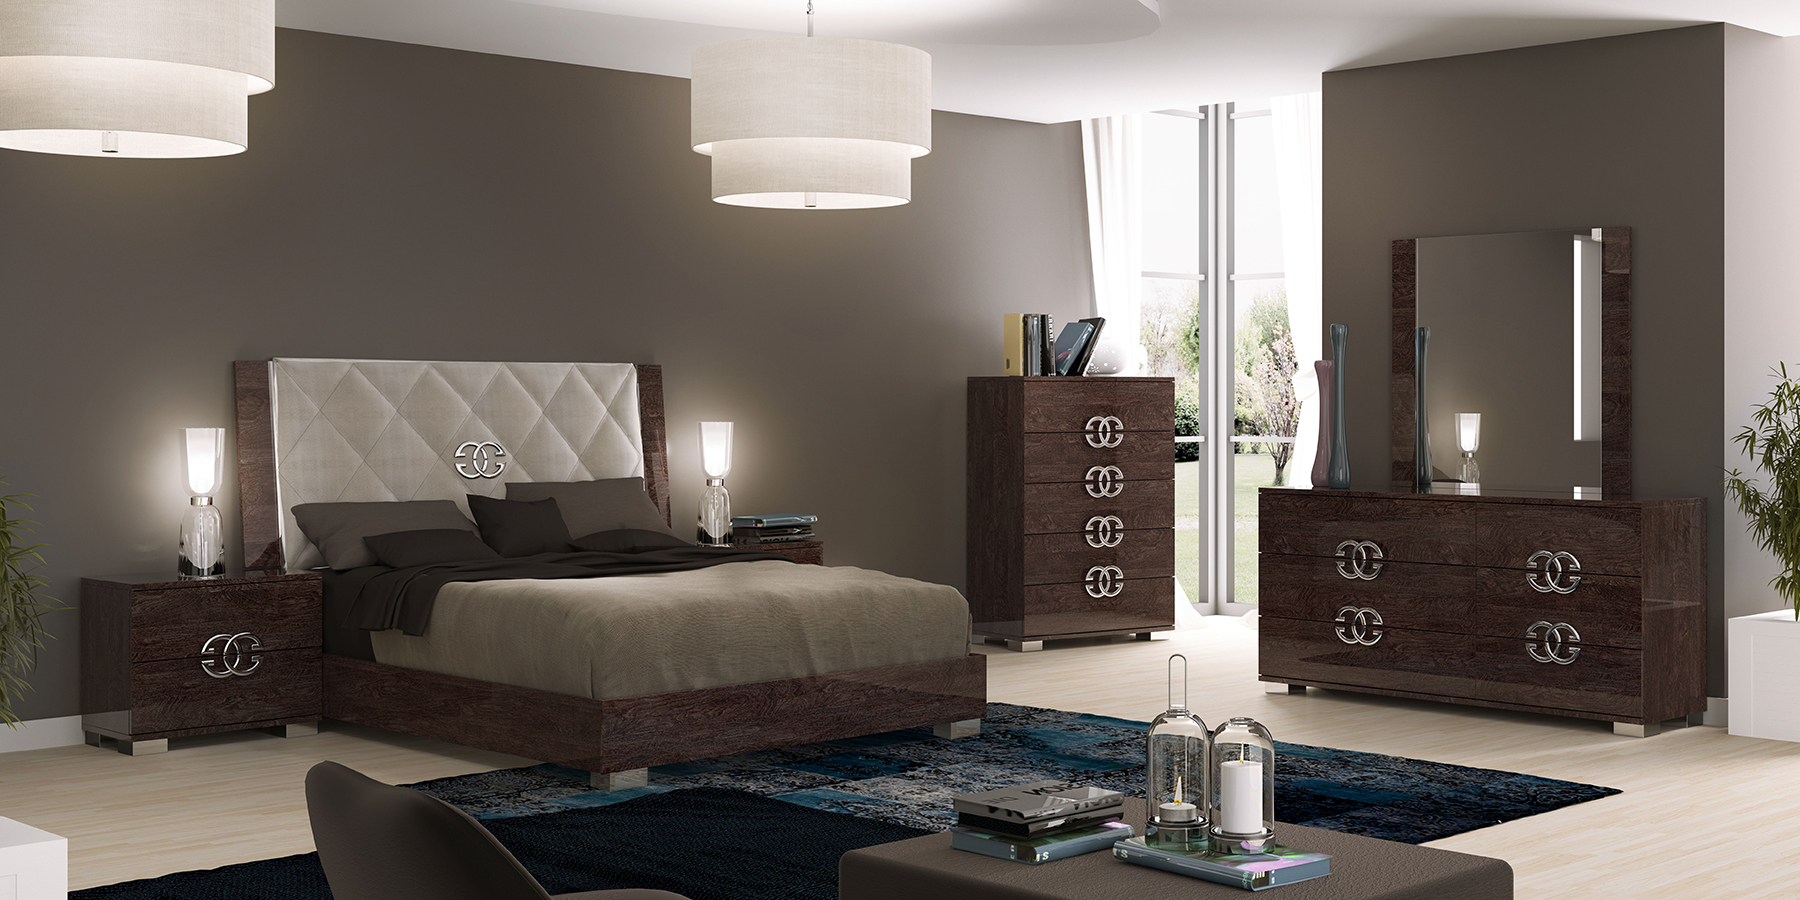 modern furniture italy. prestige deluxe more images and dimensions modern furniture italy n